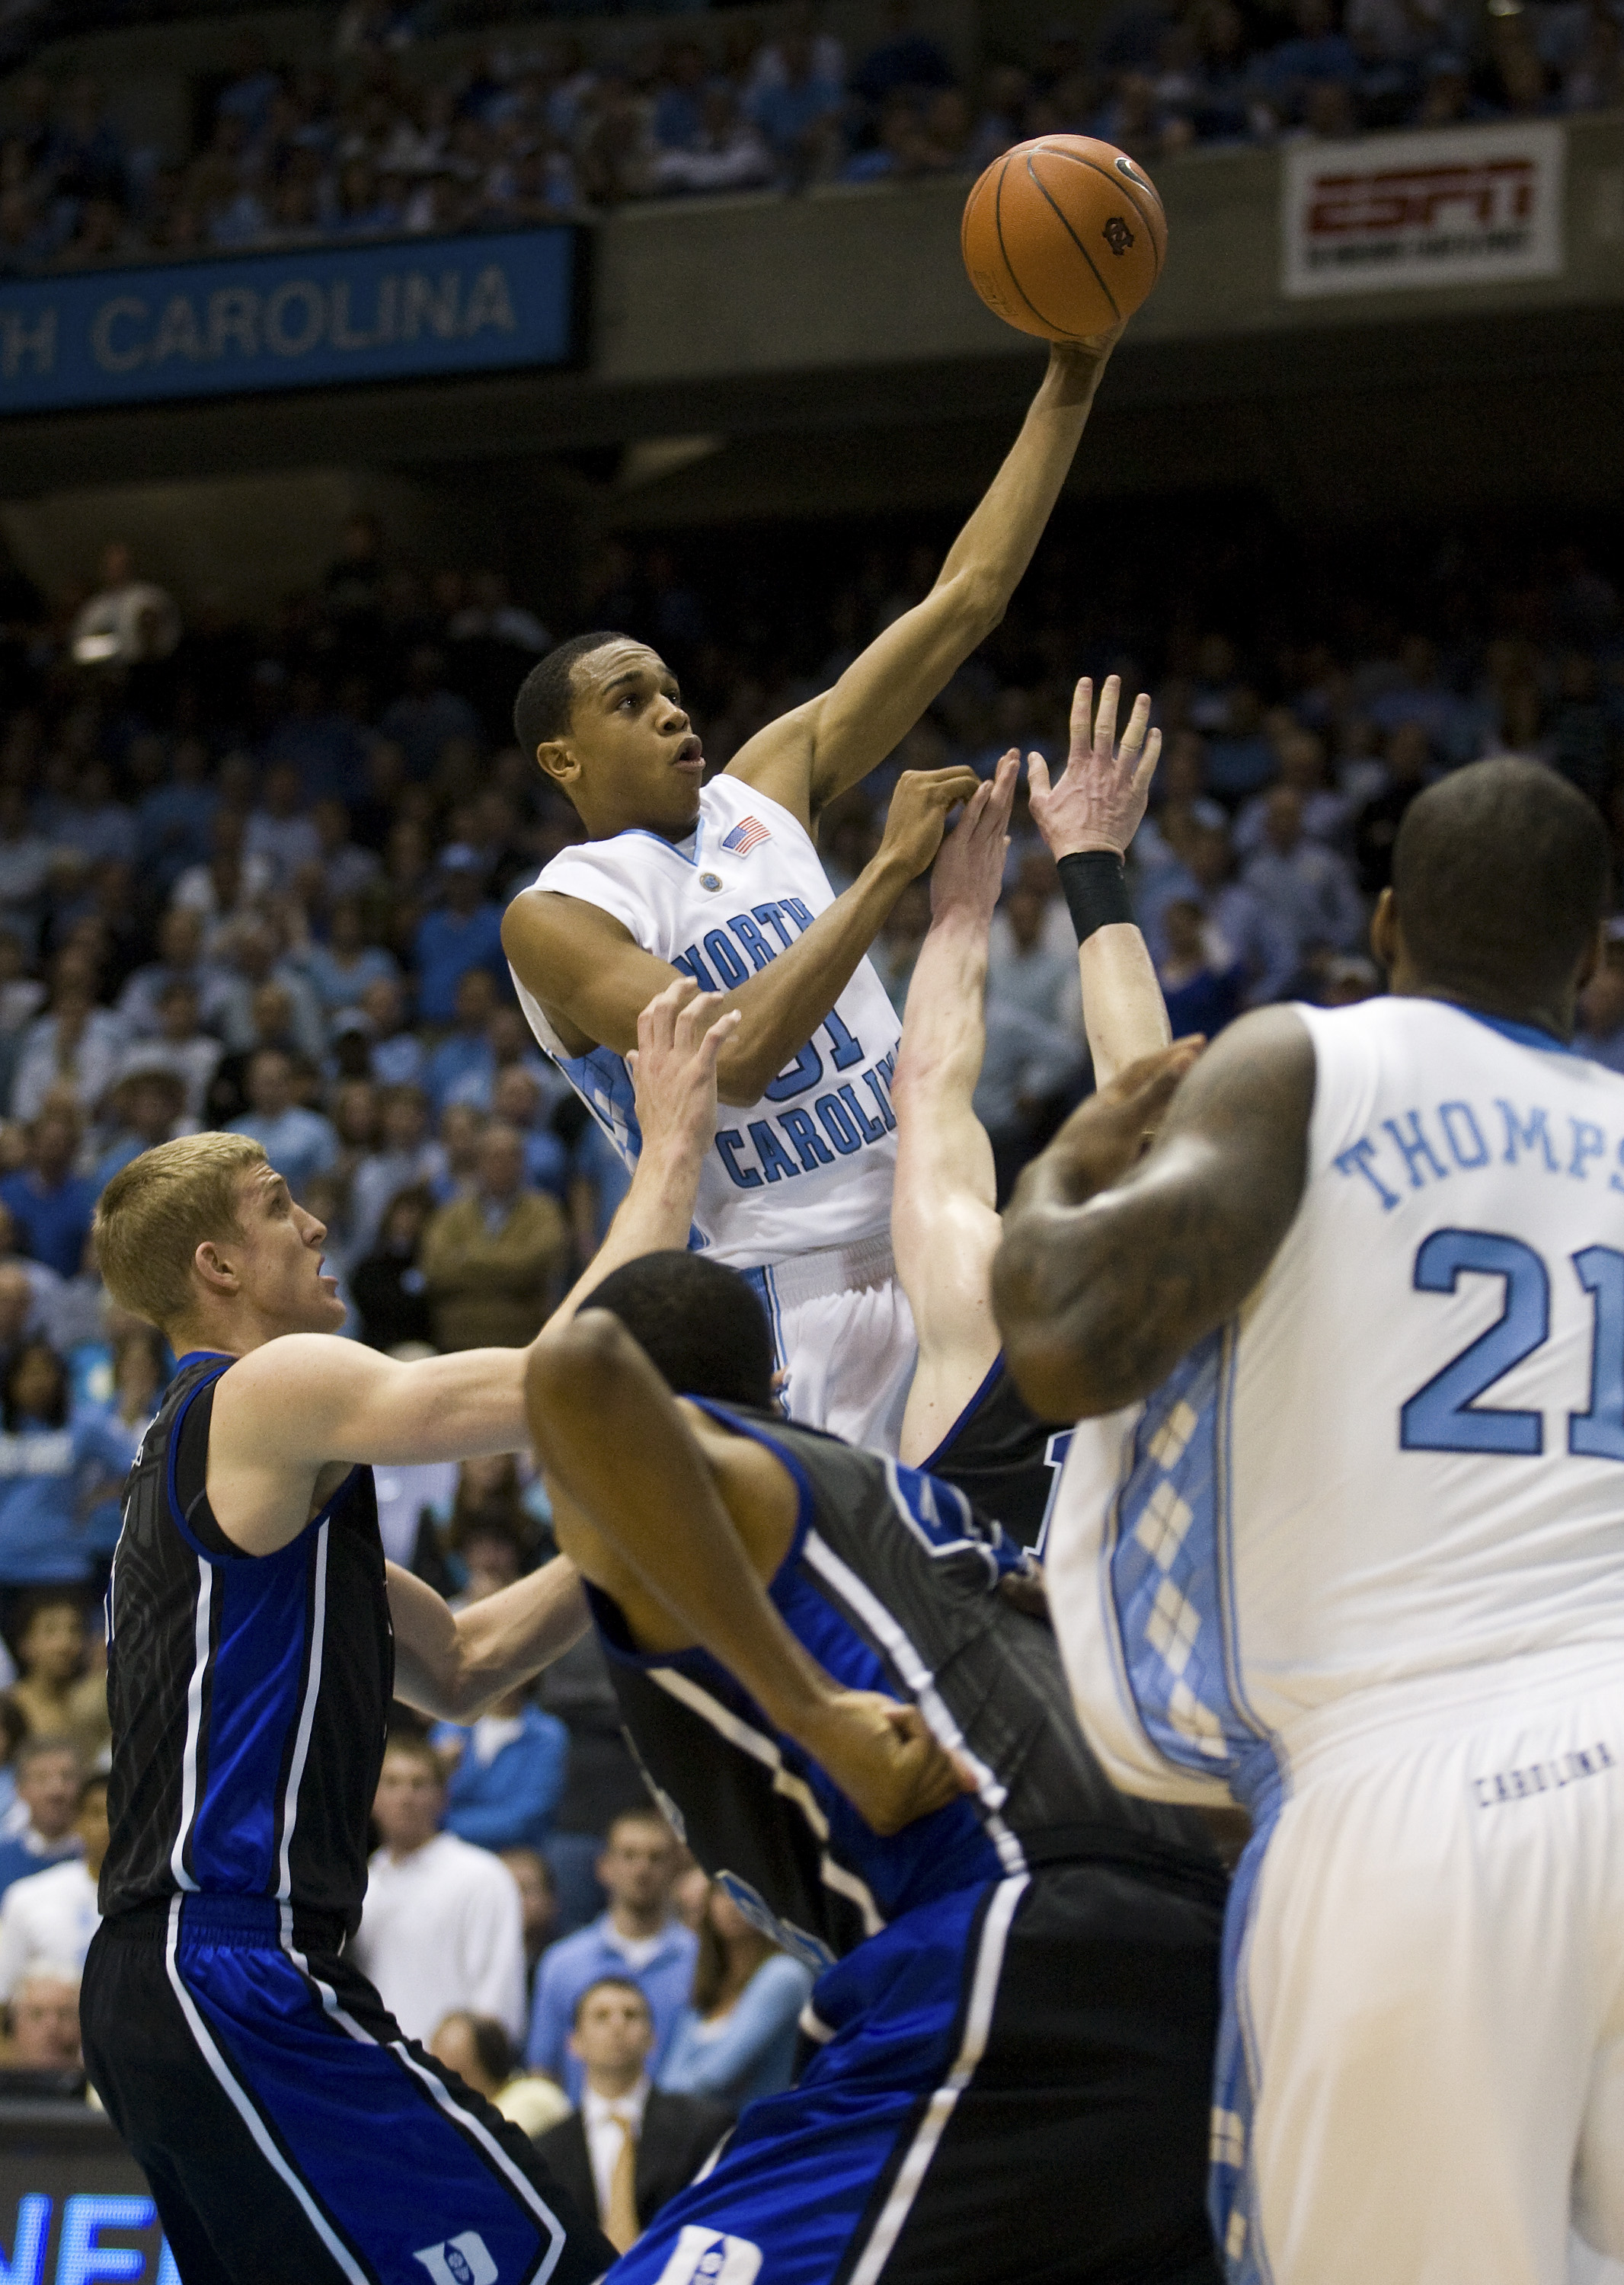 CHAPEL HILL, NC - FEBRUARY 10: North Carolina forward John Henson #31 puts up a shot against Duke during a men's college basketball game at Dean Smith Center on February 10, 2010 in Chapel Hill, North Carolina. (Photo by Chris Keane/Getty Images)